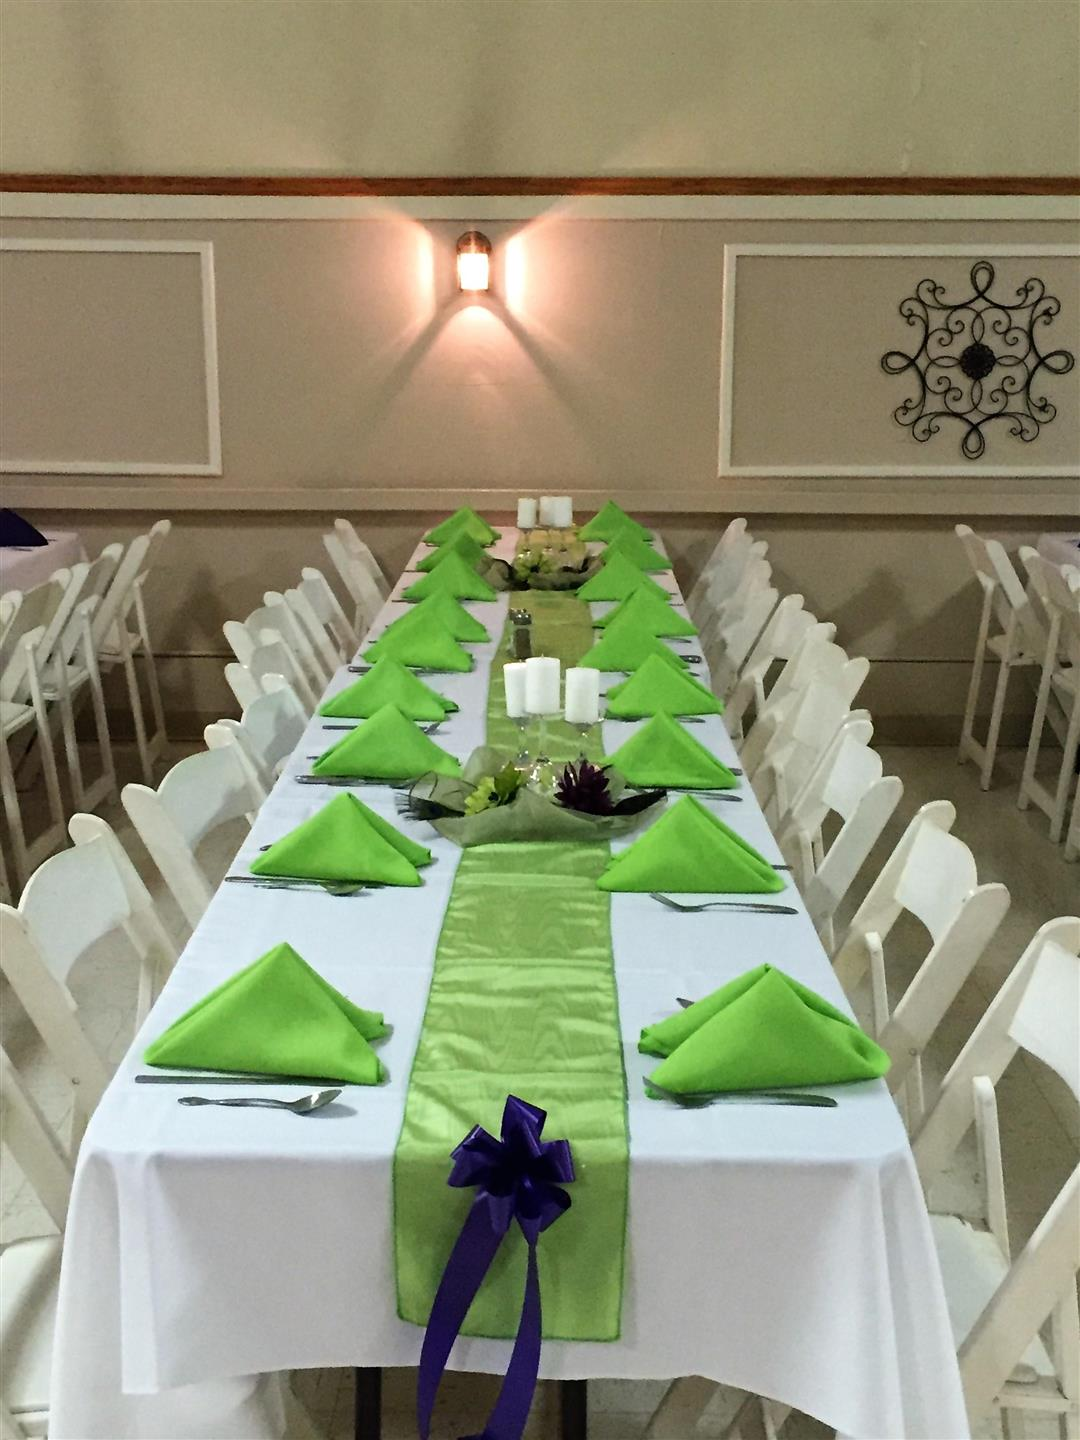 long table setup with tablecloths, folded napkins and ribbon decorations with candles